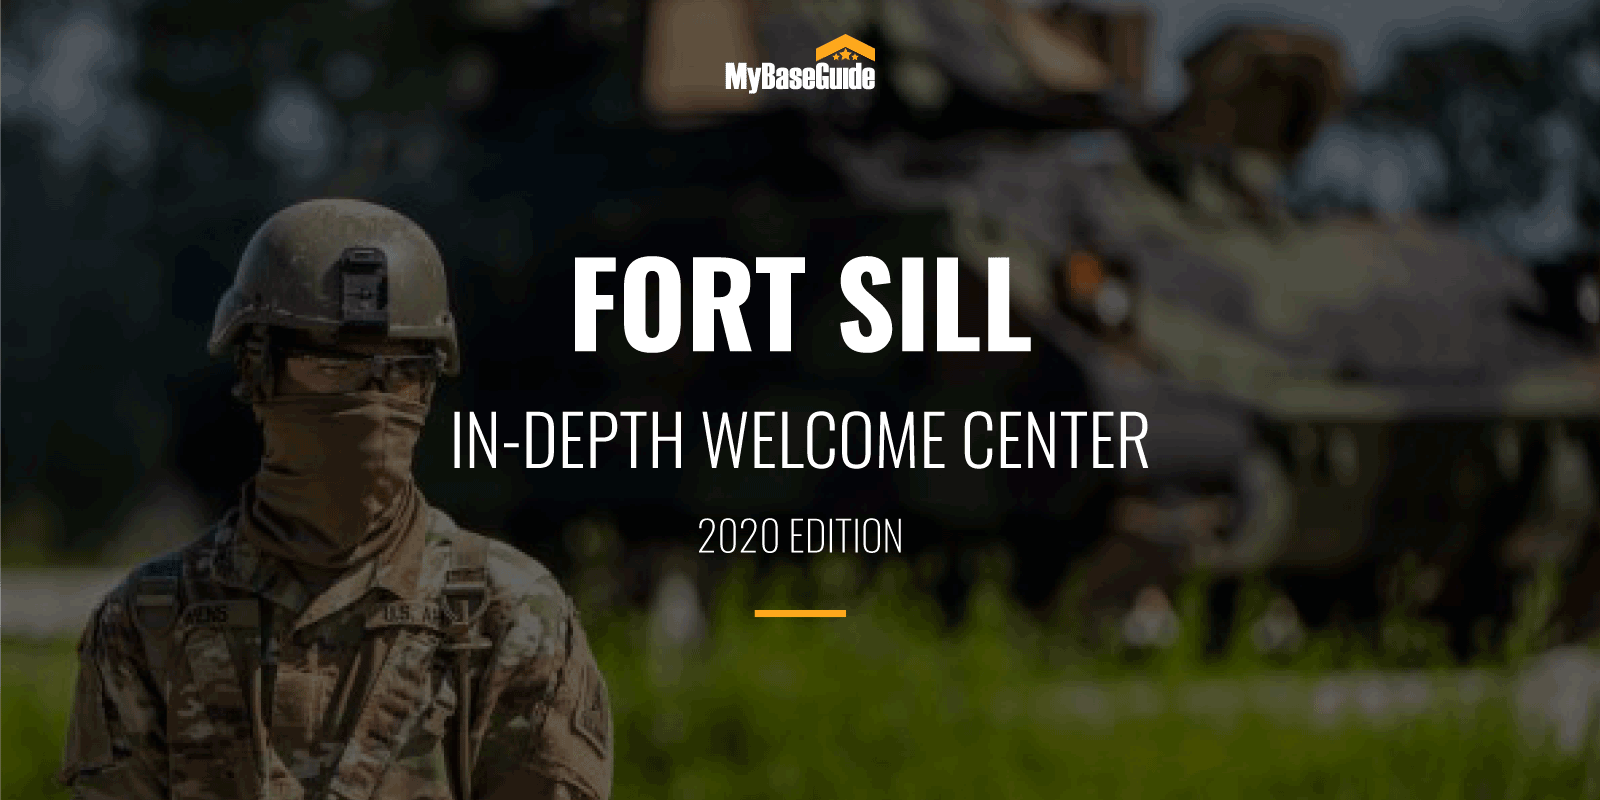 Fort Sill: In-Depth Welcome Center